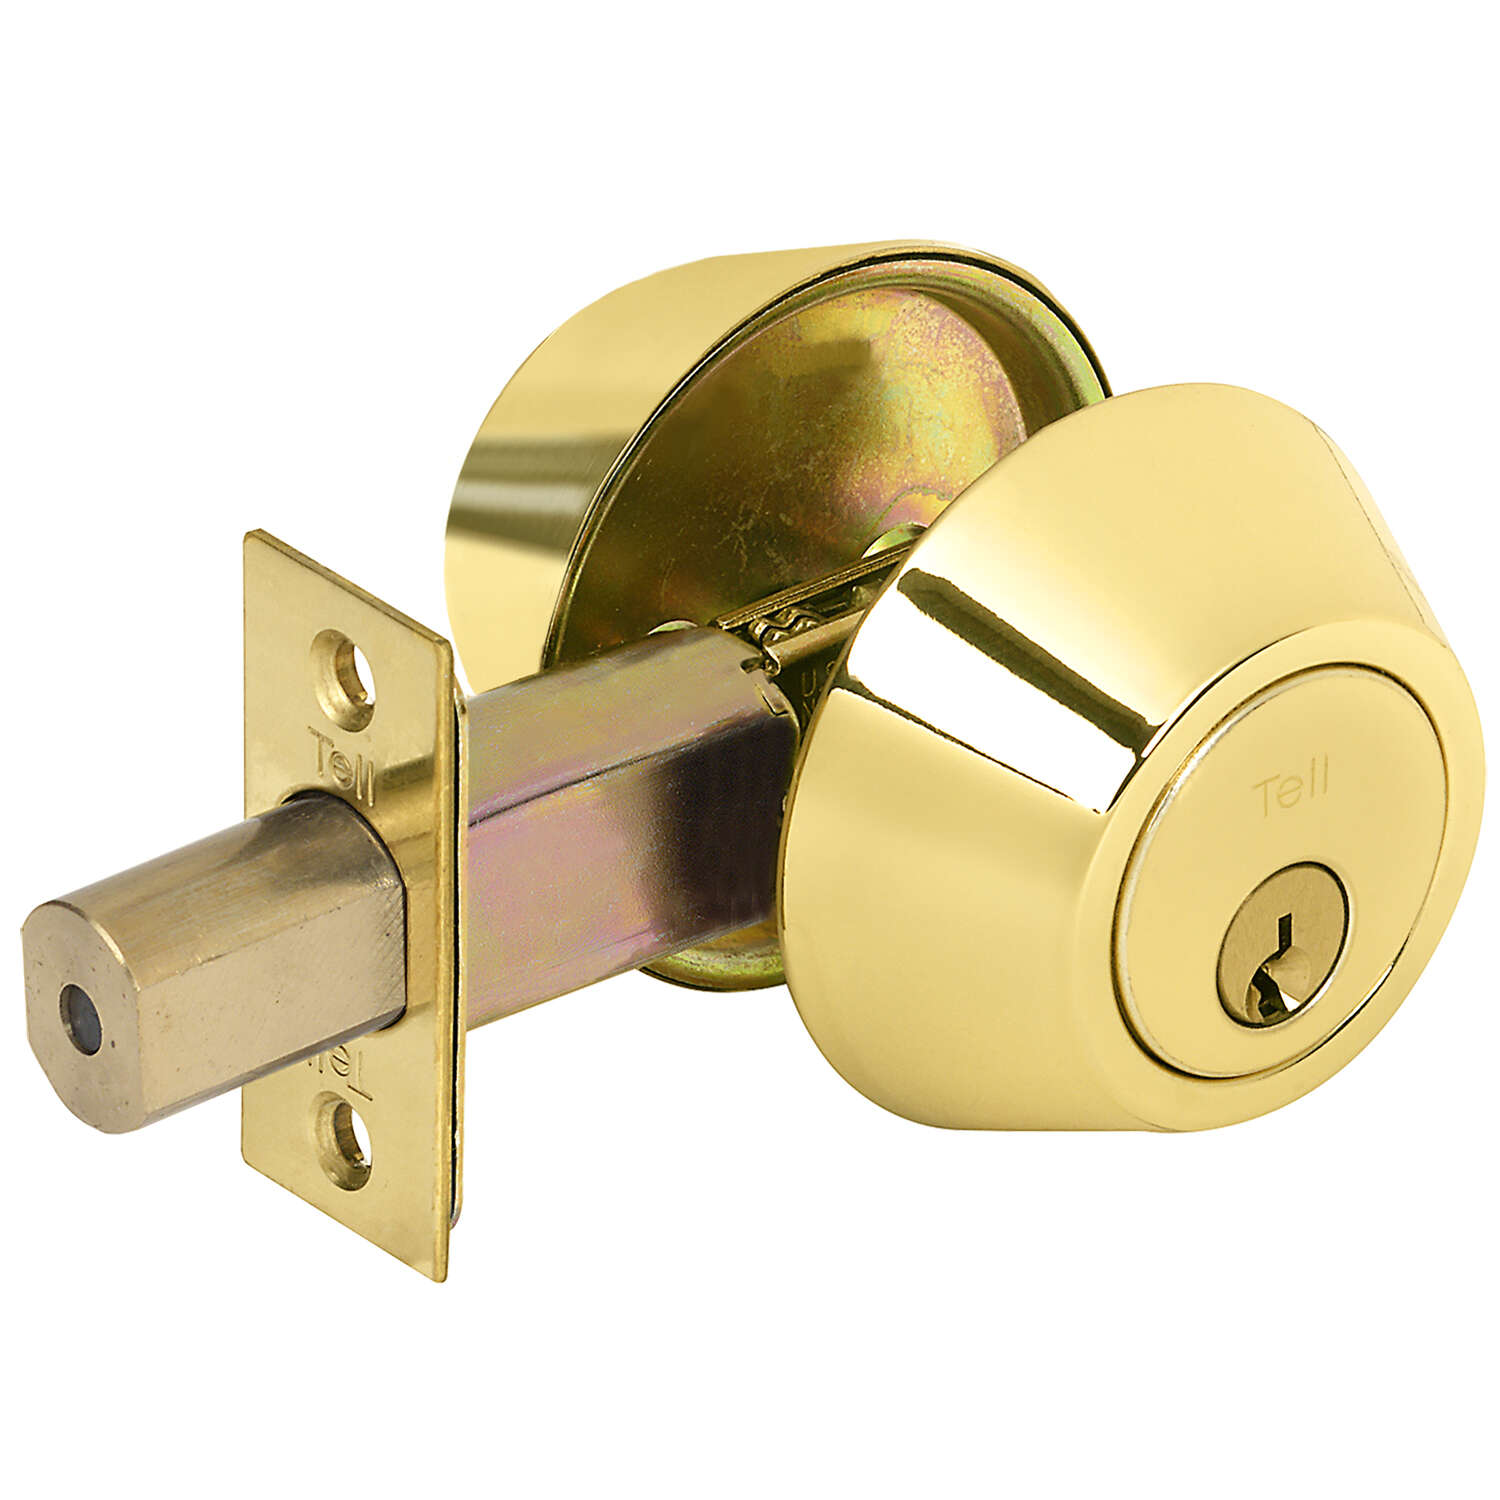 Tell  Bright Brass  Metal  Deadbolt